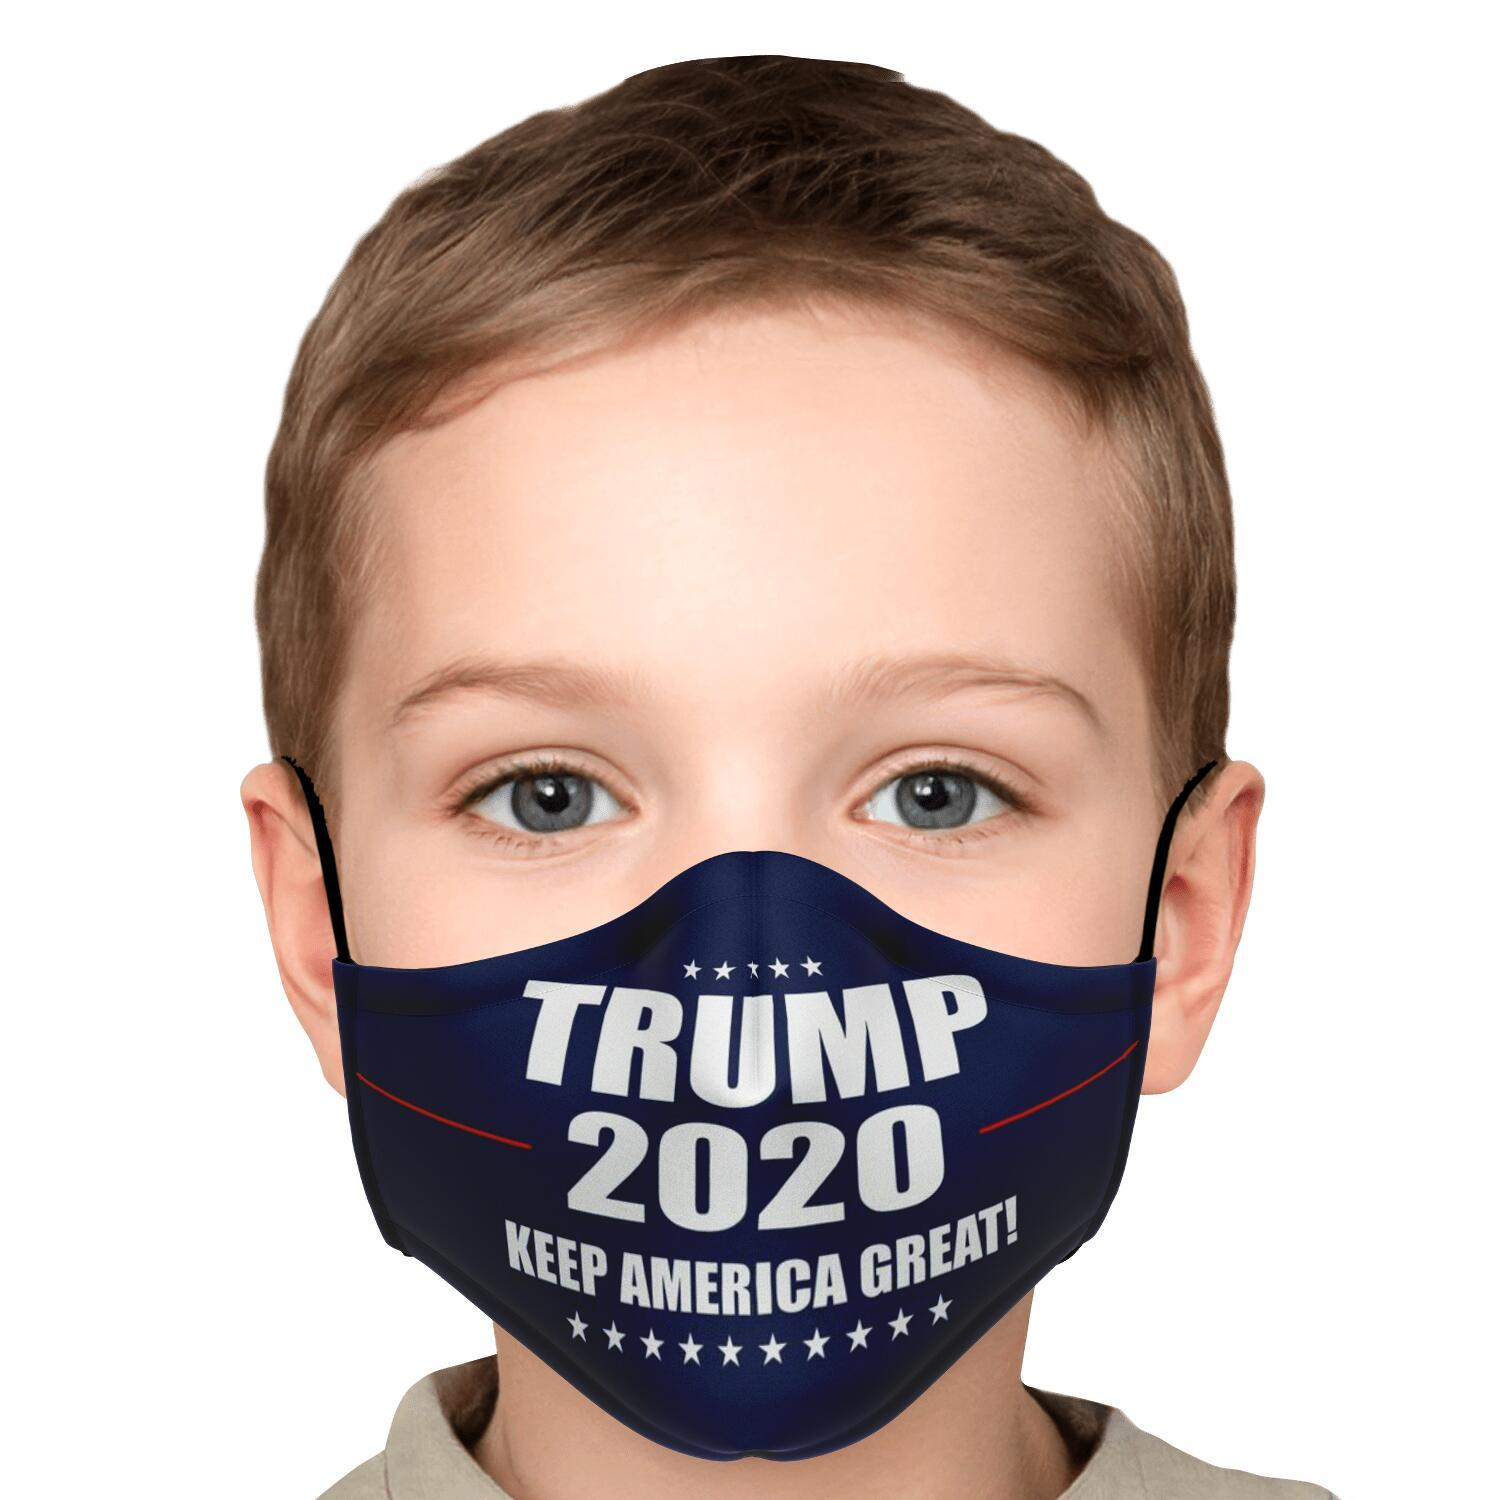 Keep America Great Trump 2020 Face Mask 5